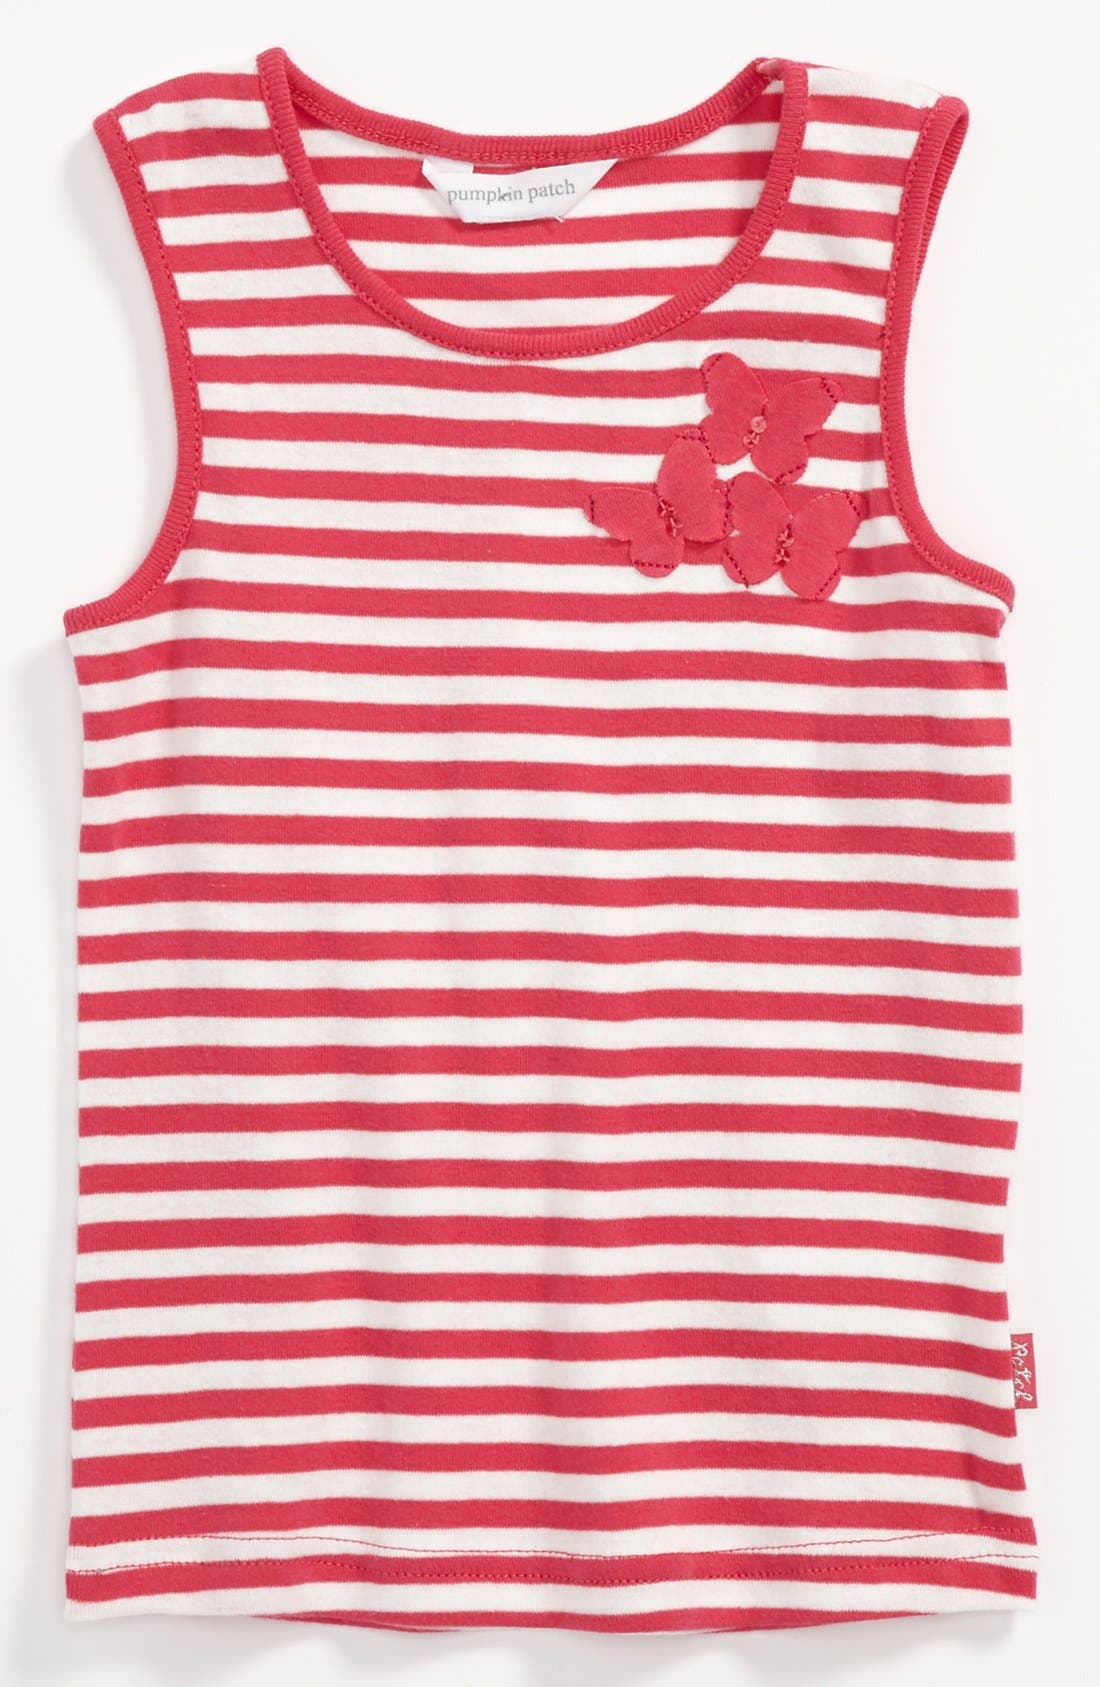 Alternate Image 1 Selected - Pumpkin Patch Stripe Tank Top (Toddler)